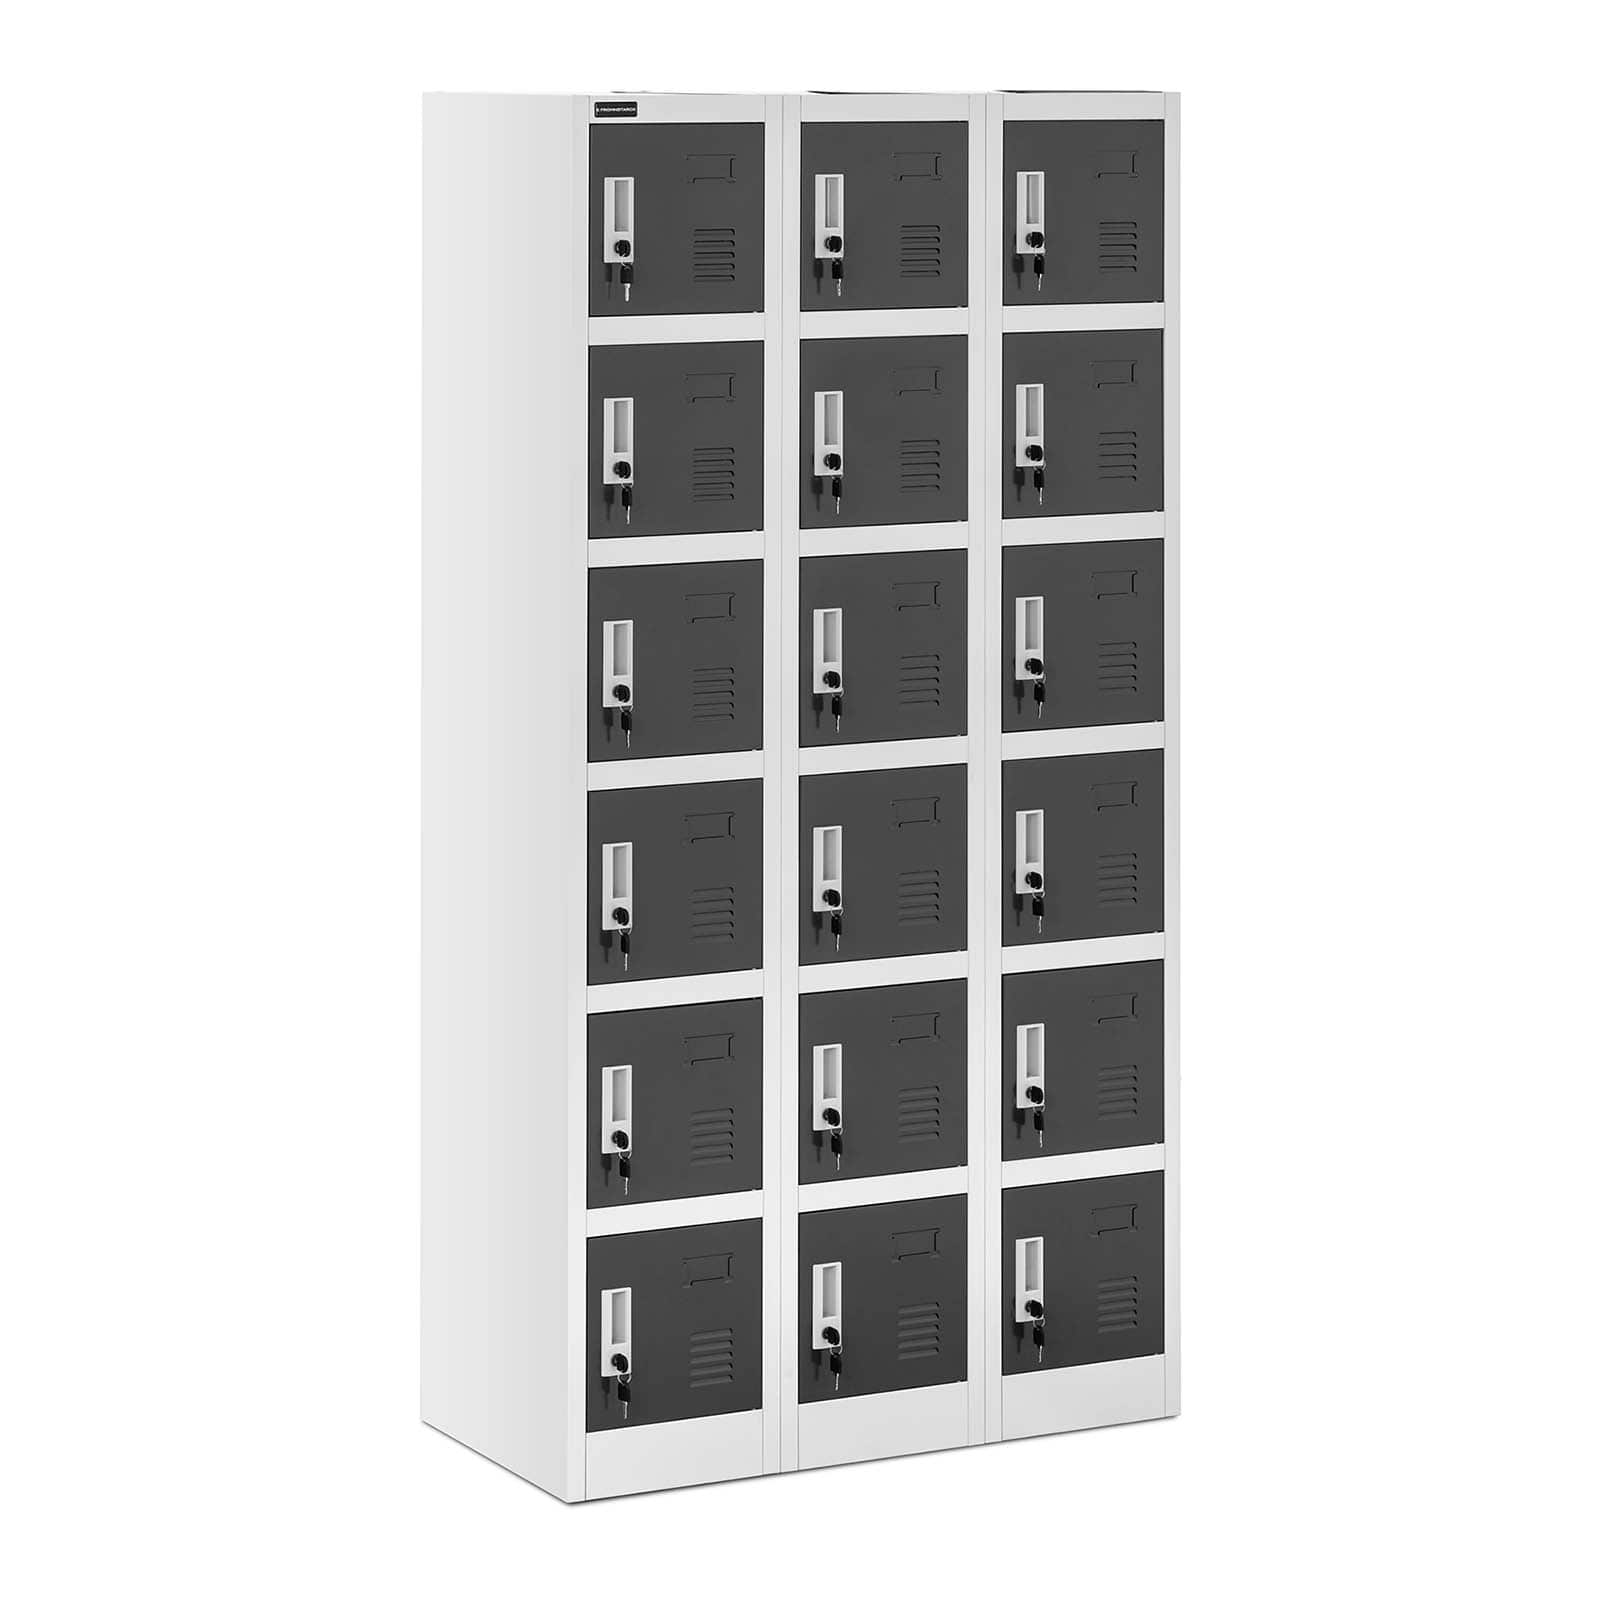 Storage lockers for staff, offices and industry